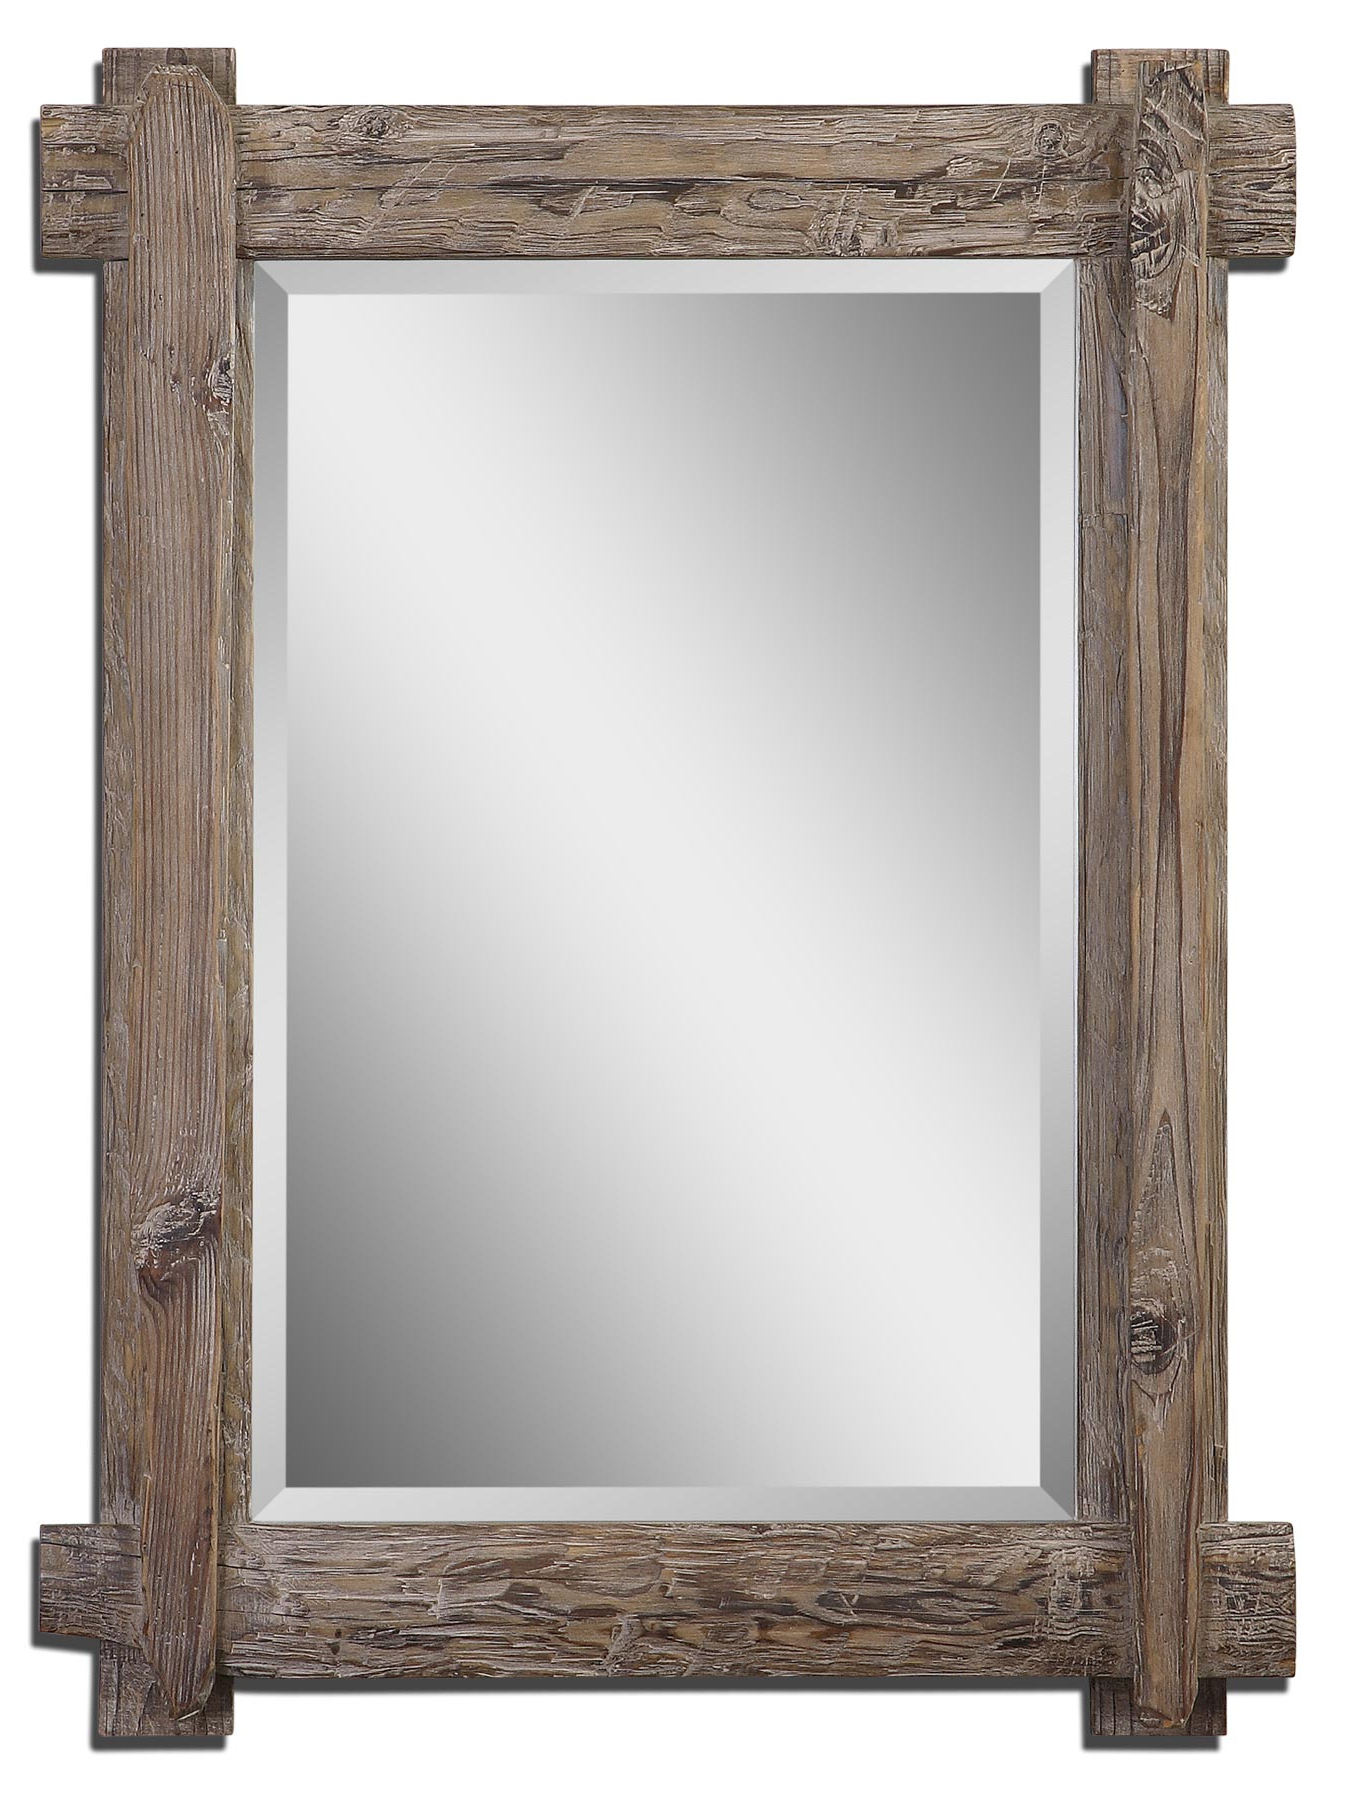 Large Wall Mirrors With Wood Frame With Regard To Well Known Wood Framed Wall Mirrors V Sanctuarycom Unfinished 43X (View 14 of 20)